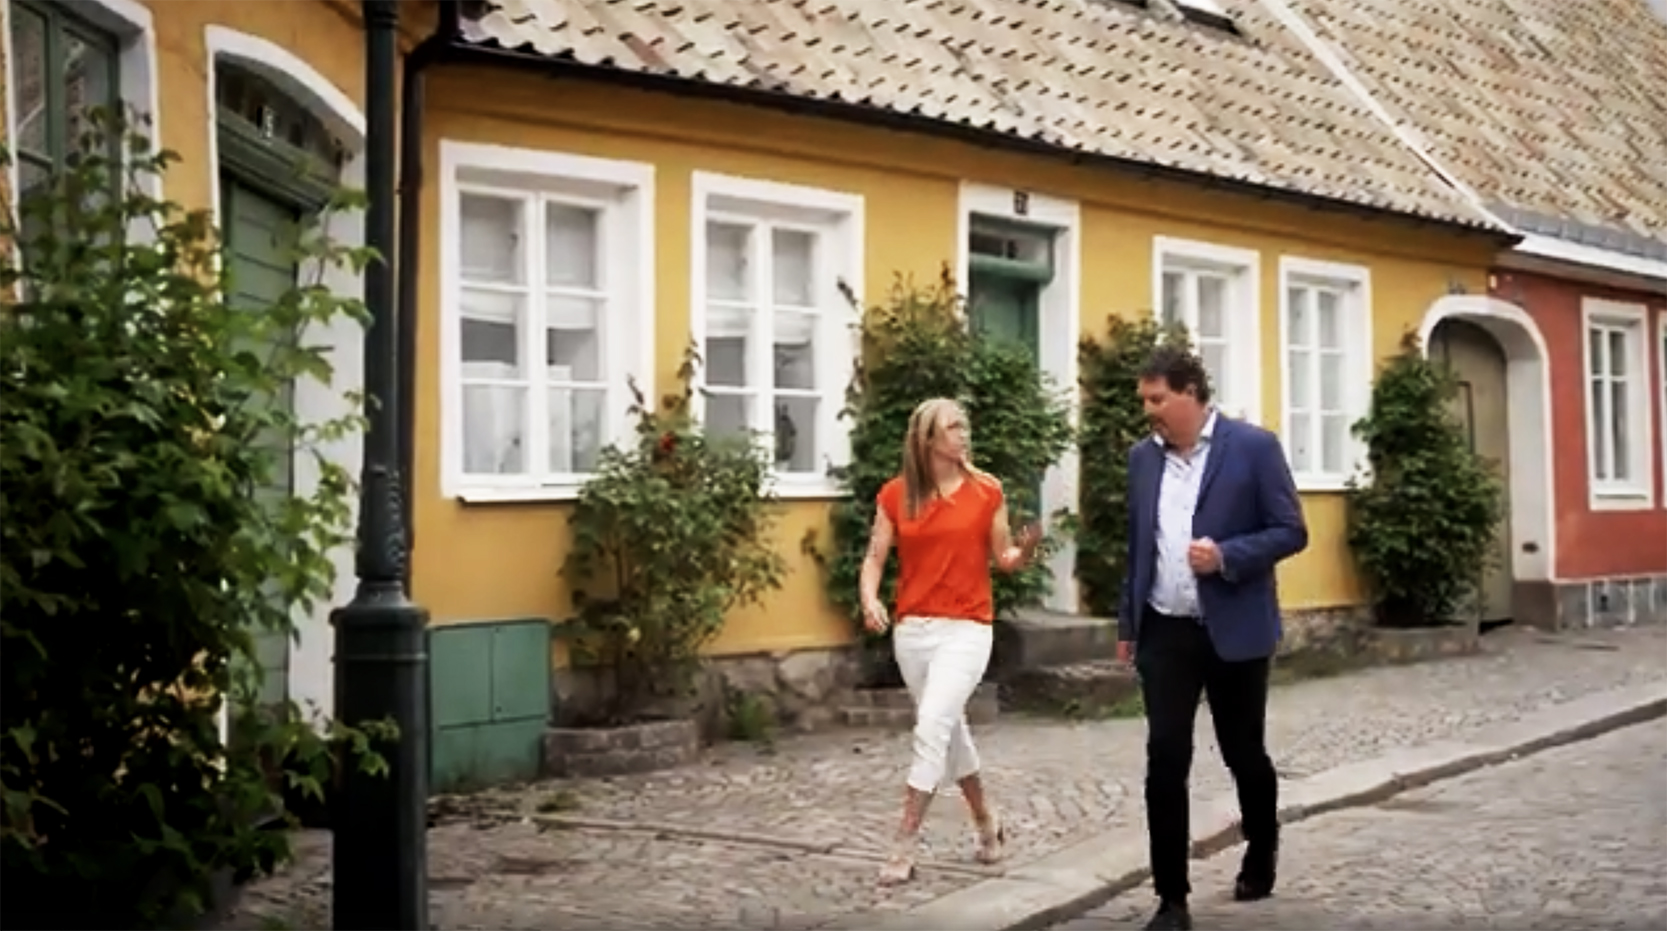 Photo of two people walking the cosy streets of Lund.